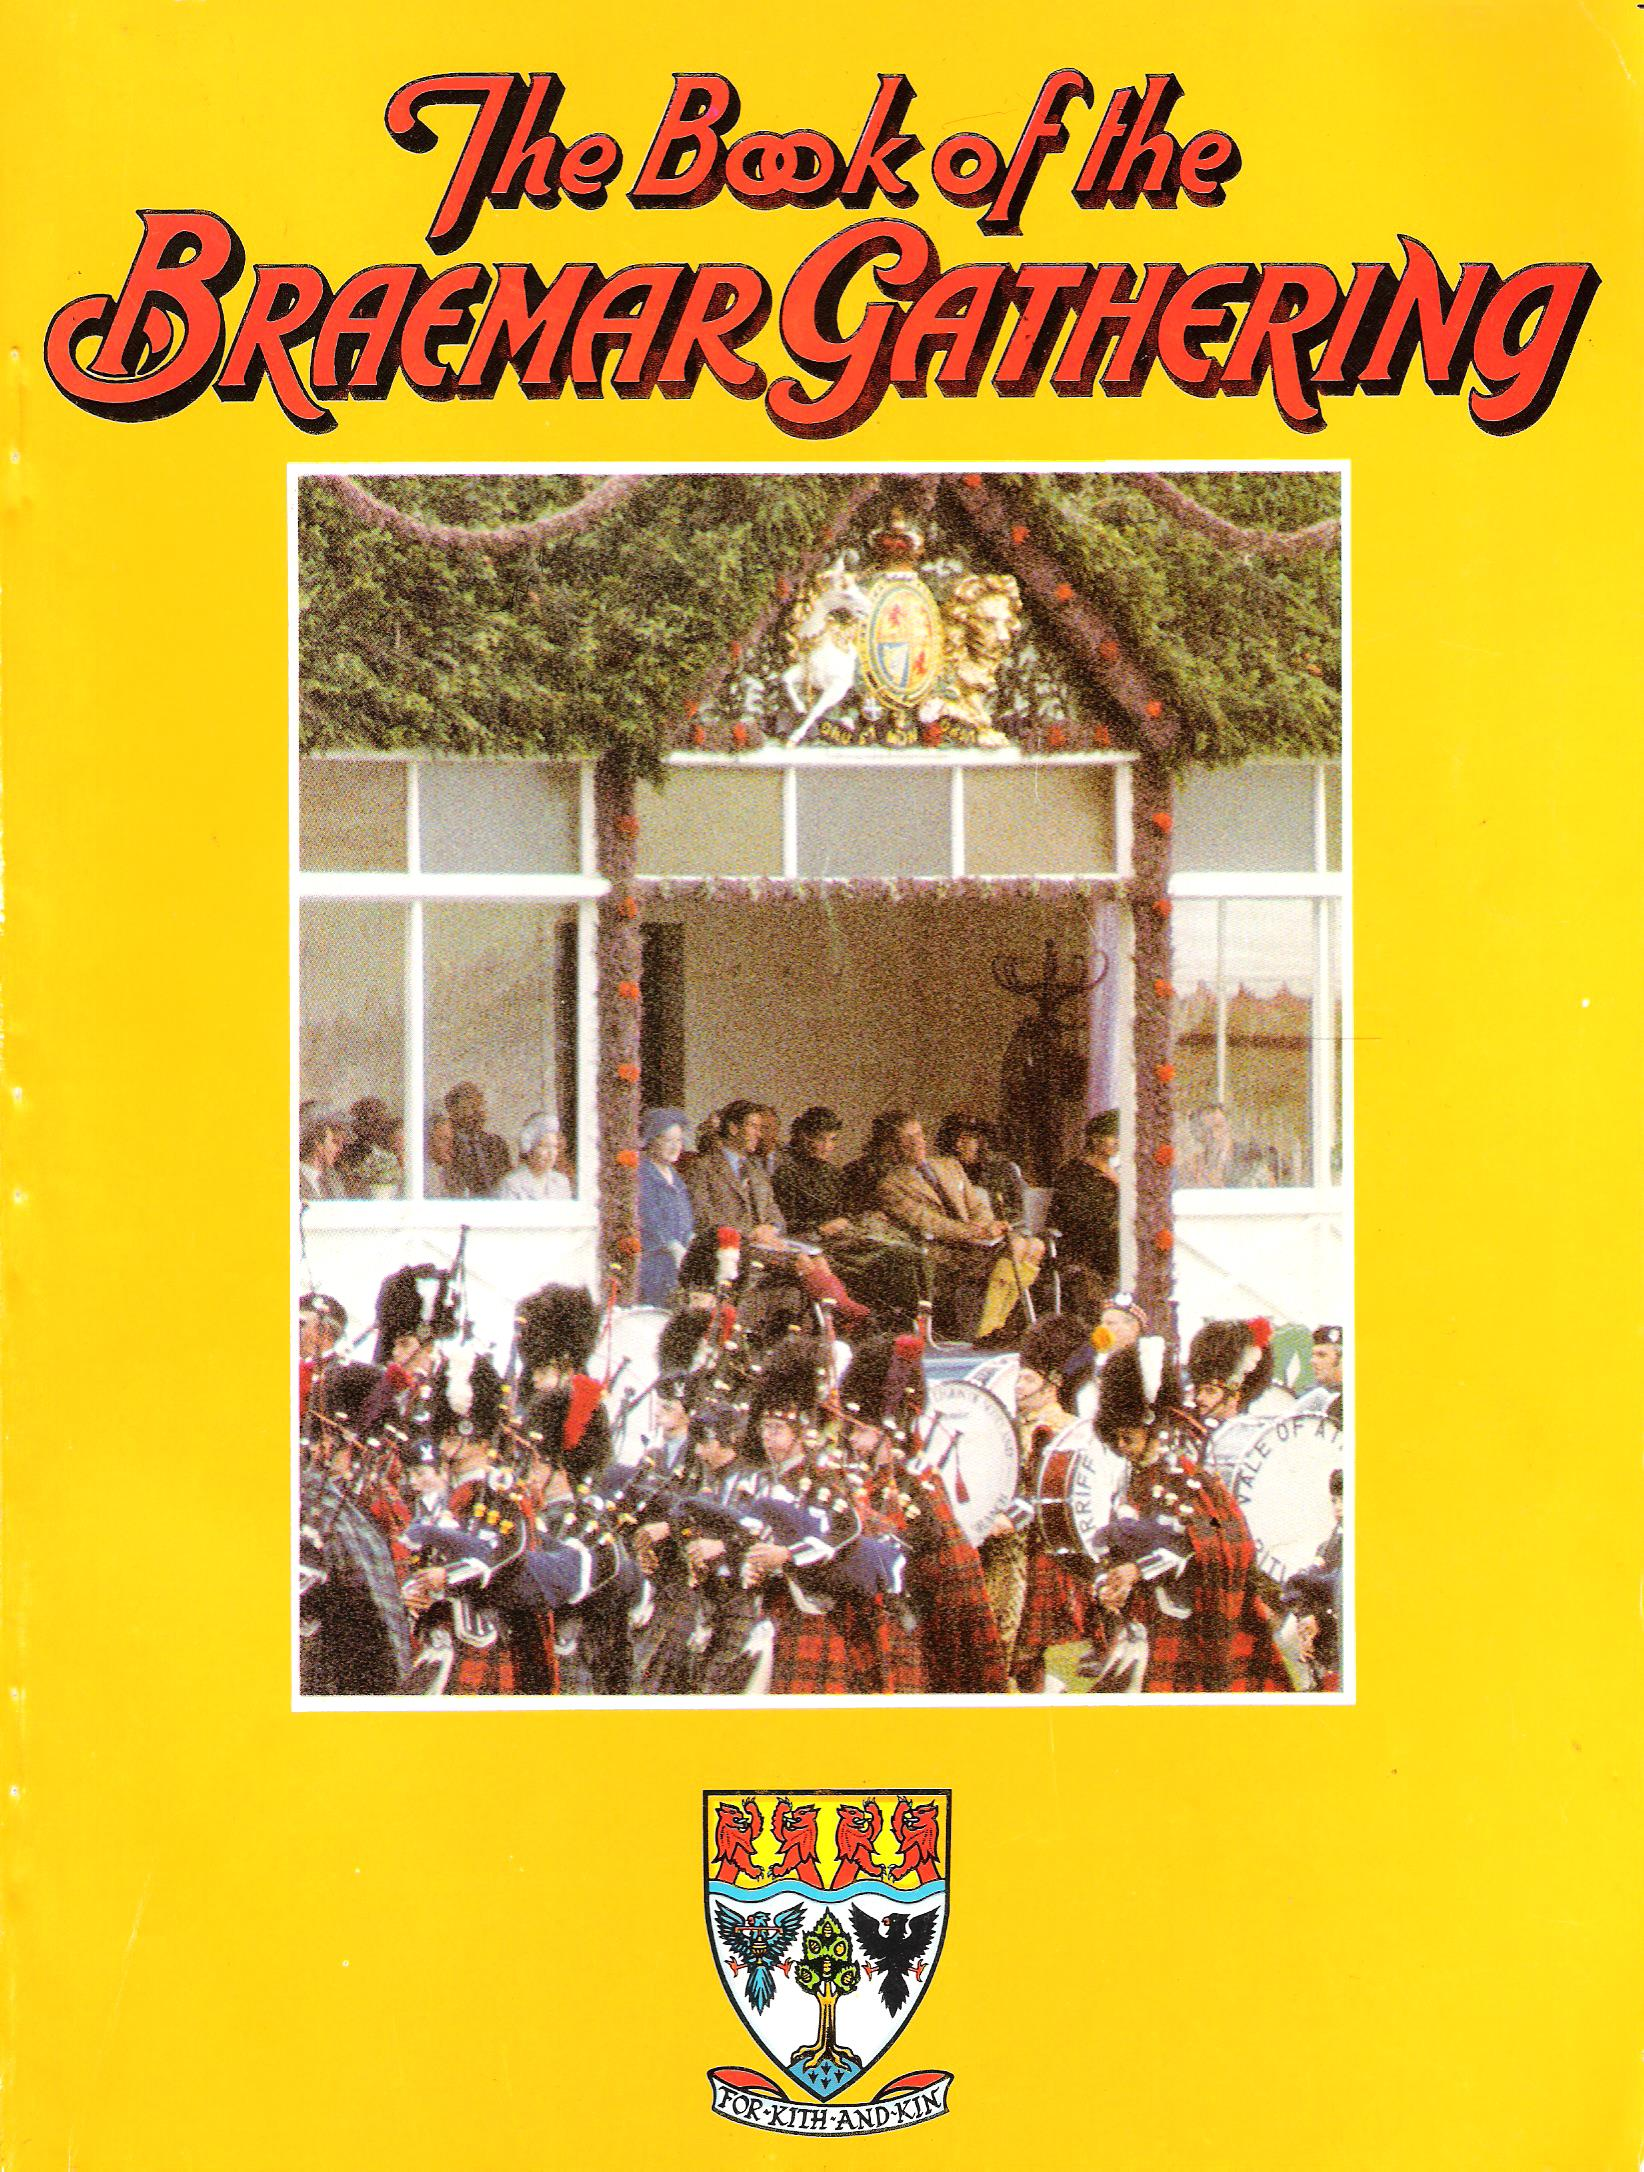 Image for The Book of the Braemar Gathering, 1984.